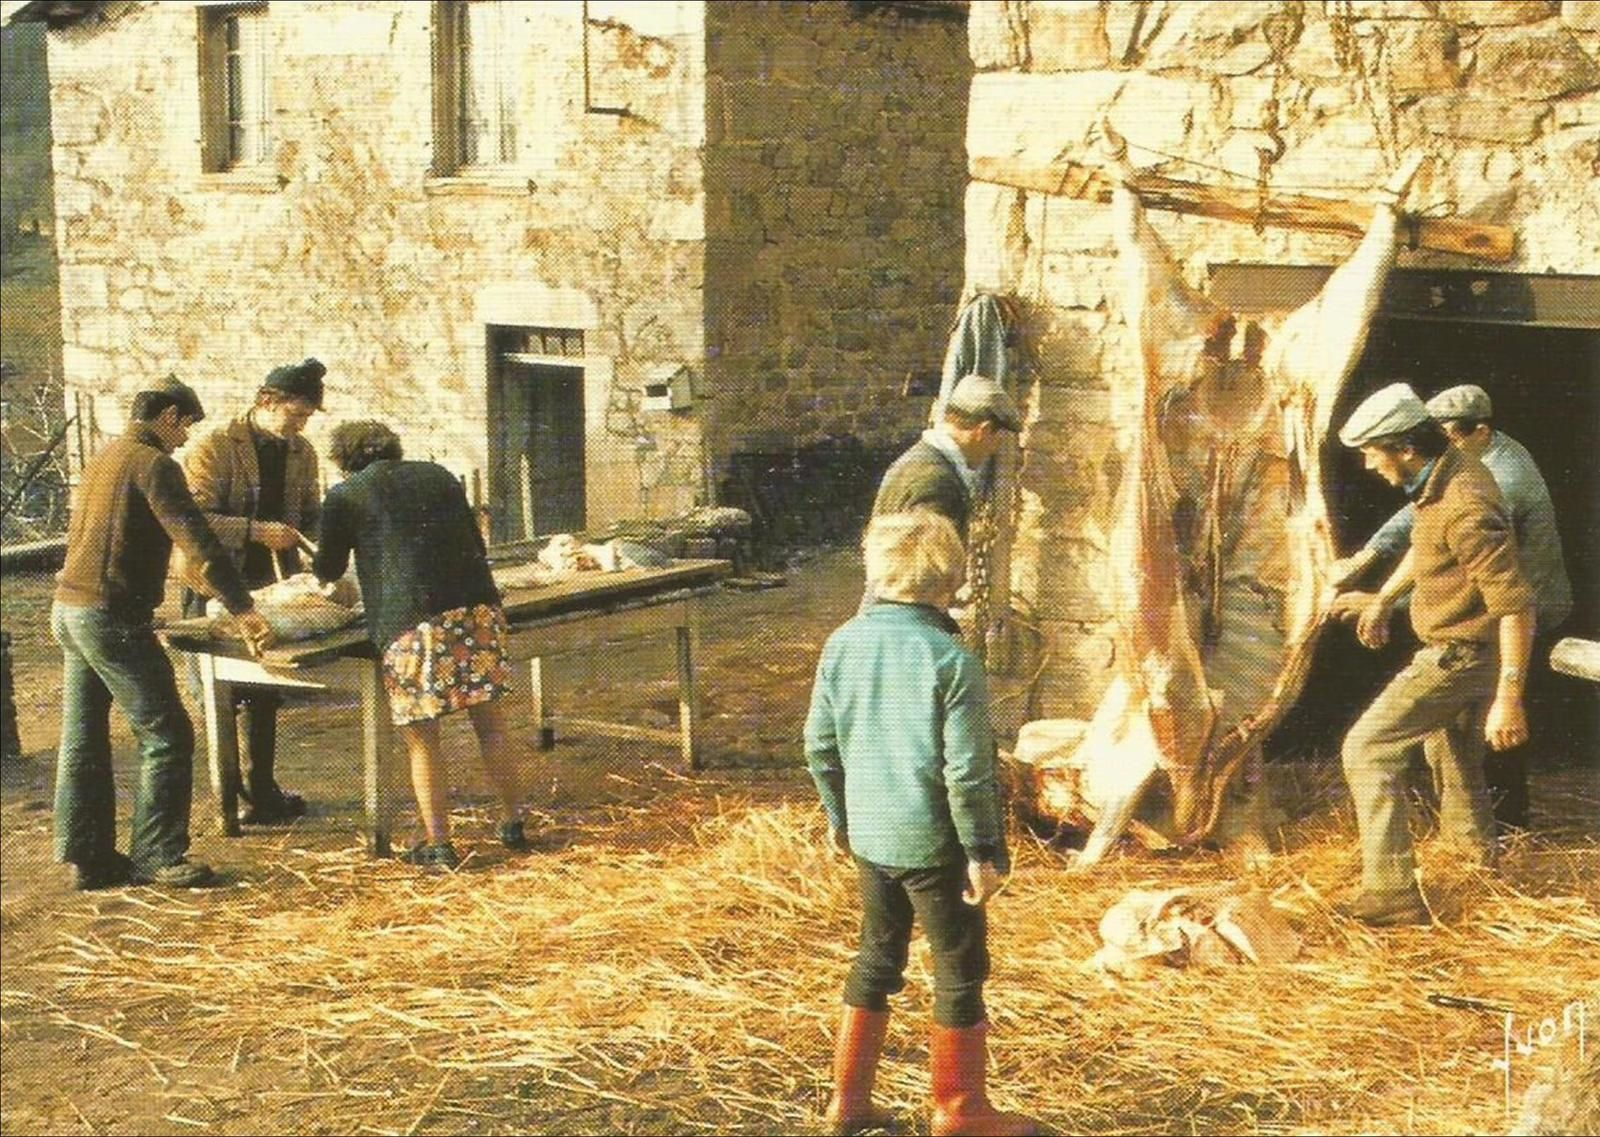 Auvergne des traditions: On tue le cochon